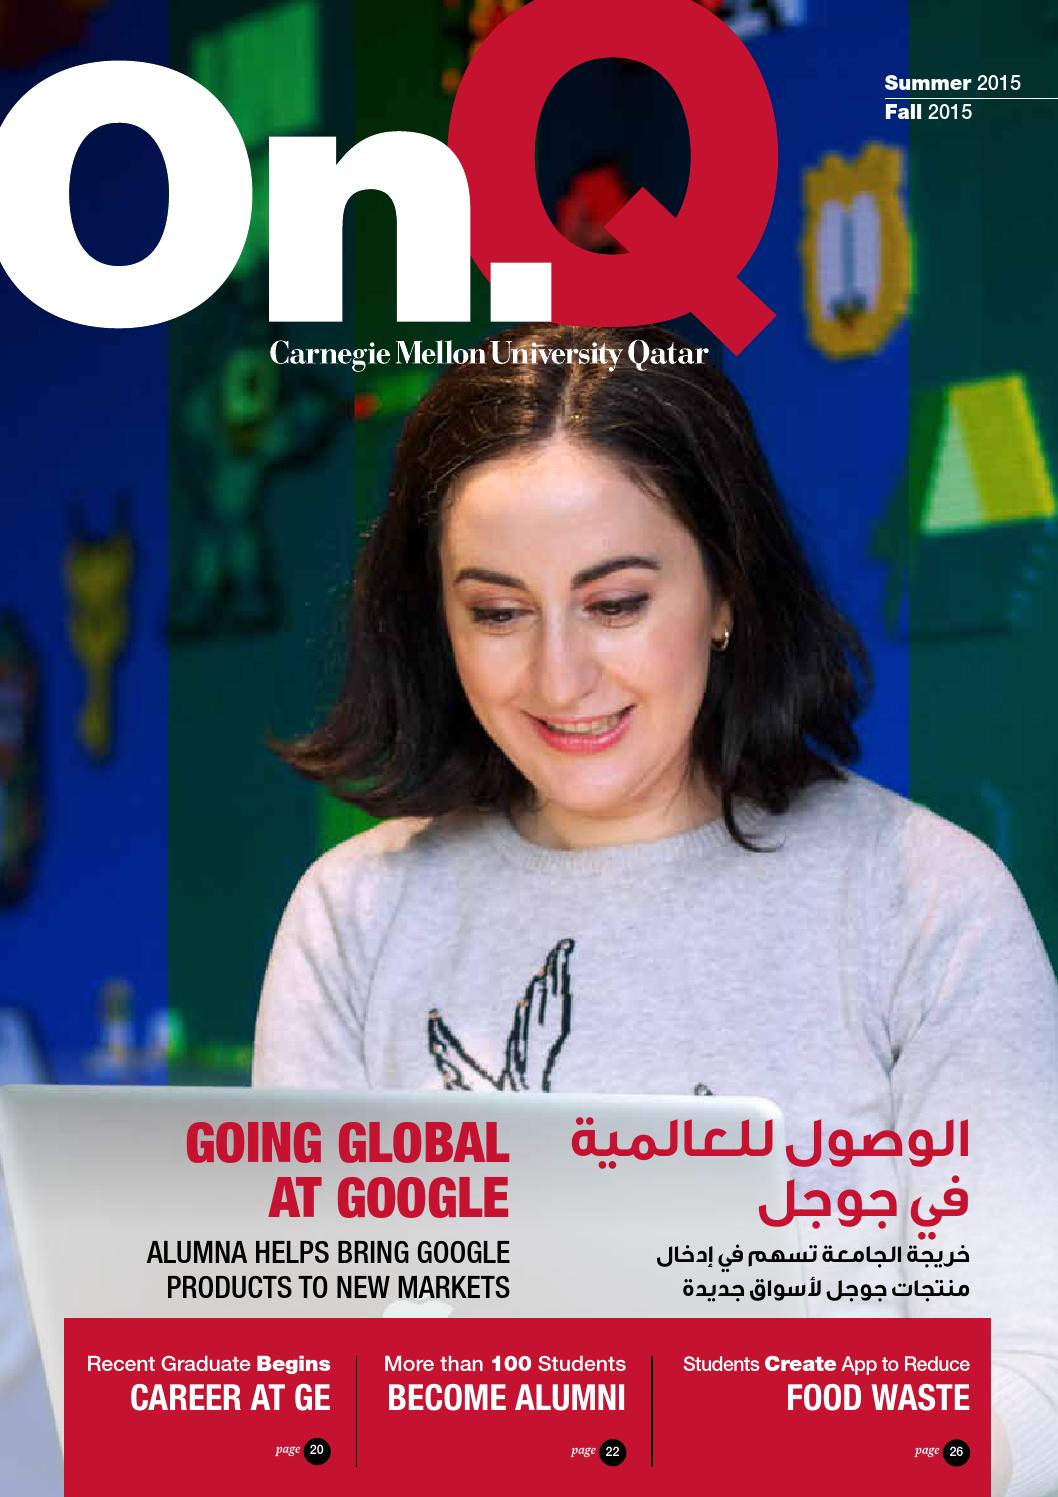 875a7bd4a8f63 CMU-Q OnQ Summer Fall 2015 by Carnegie Mellon University in Qatar - issuu